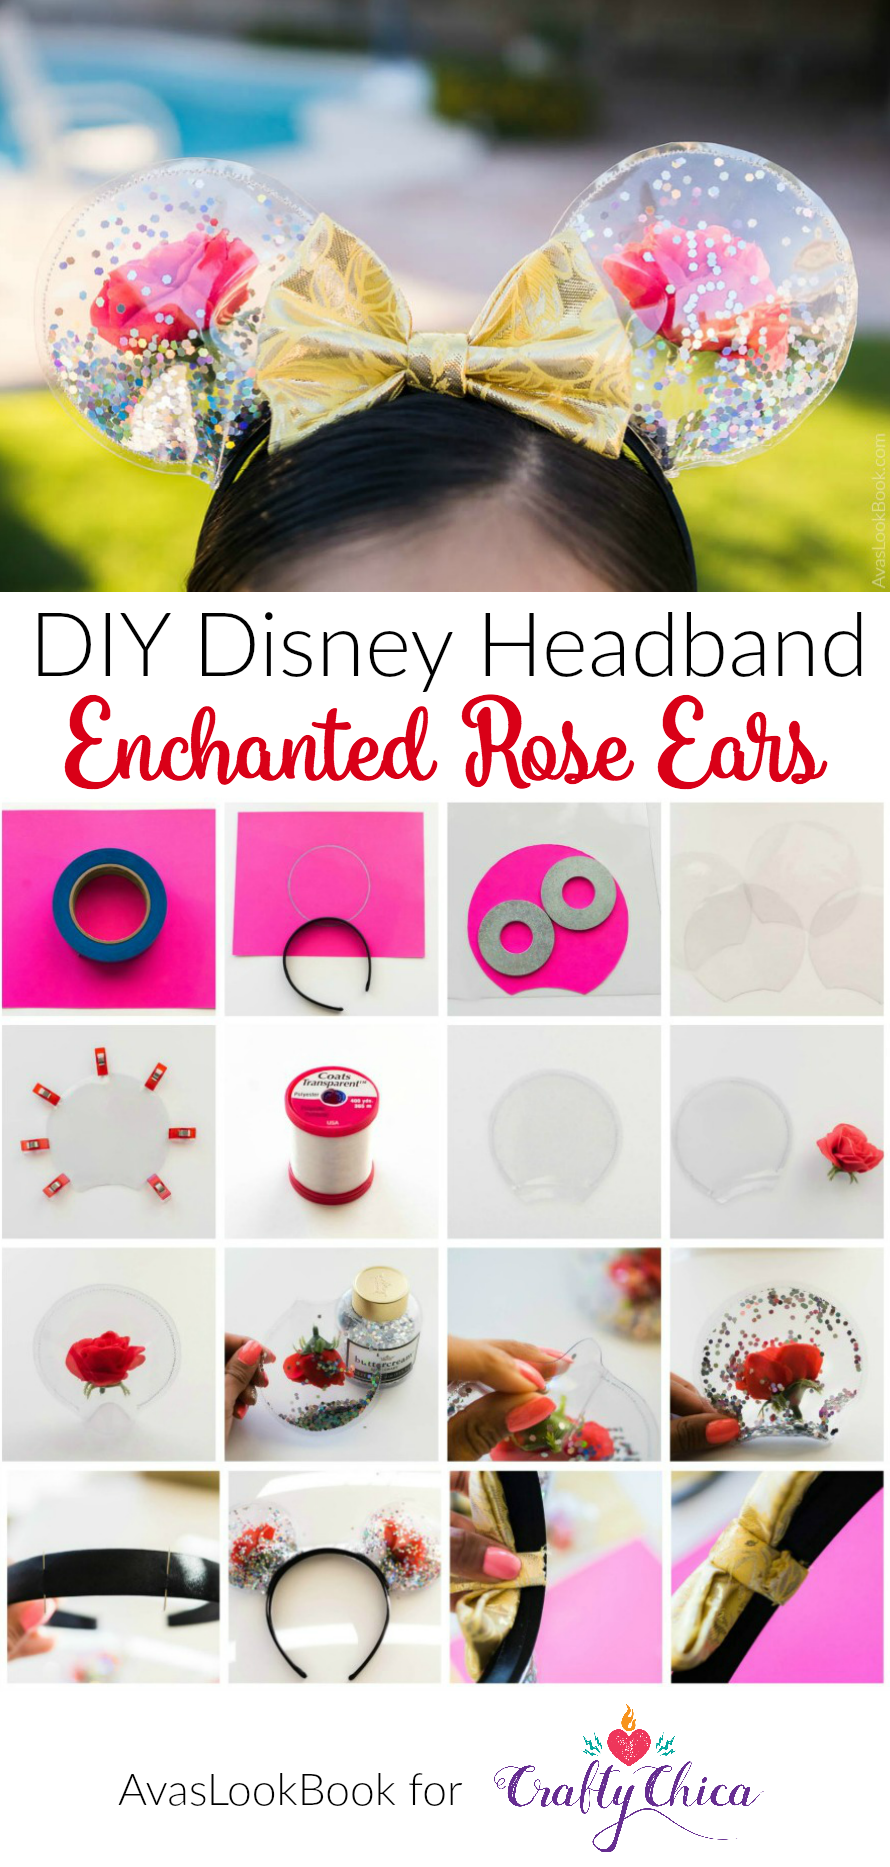 dab8459f40d8 DIY Mickey Ears  Enchanted Roses for Beauty and the Beast